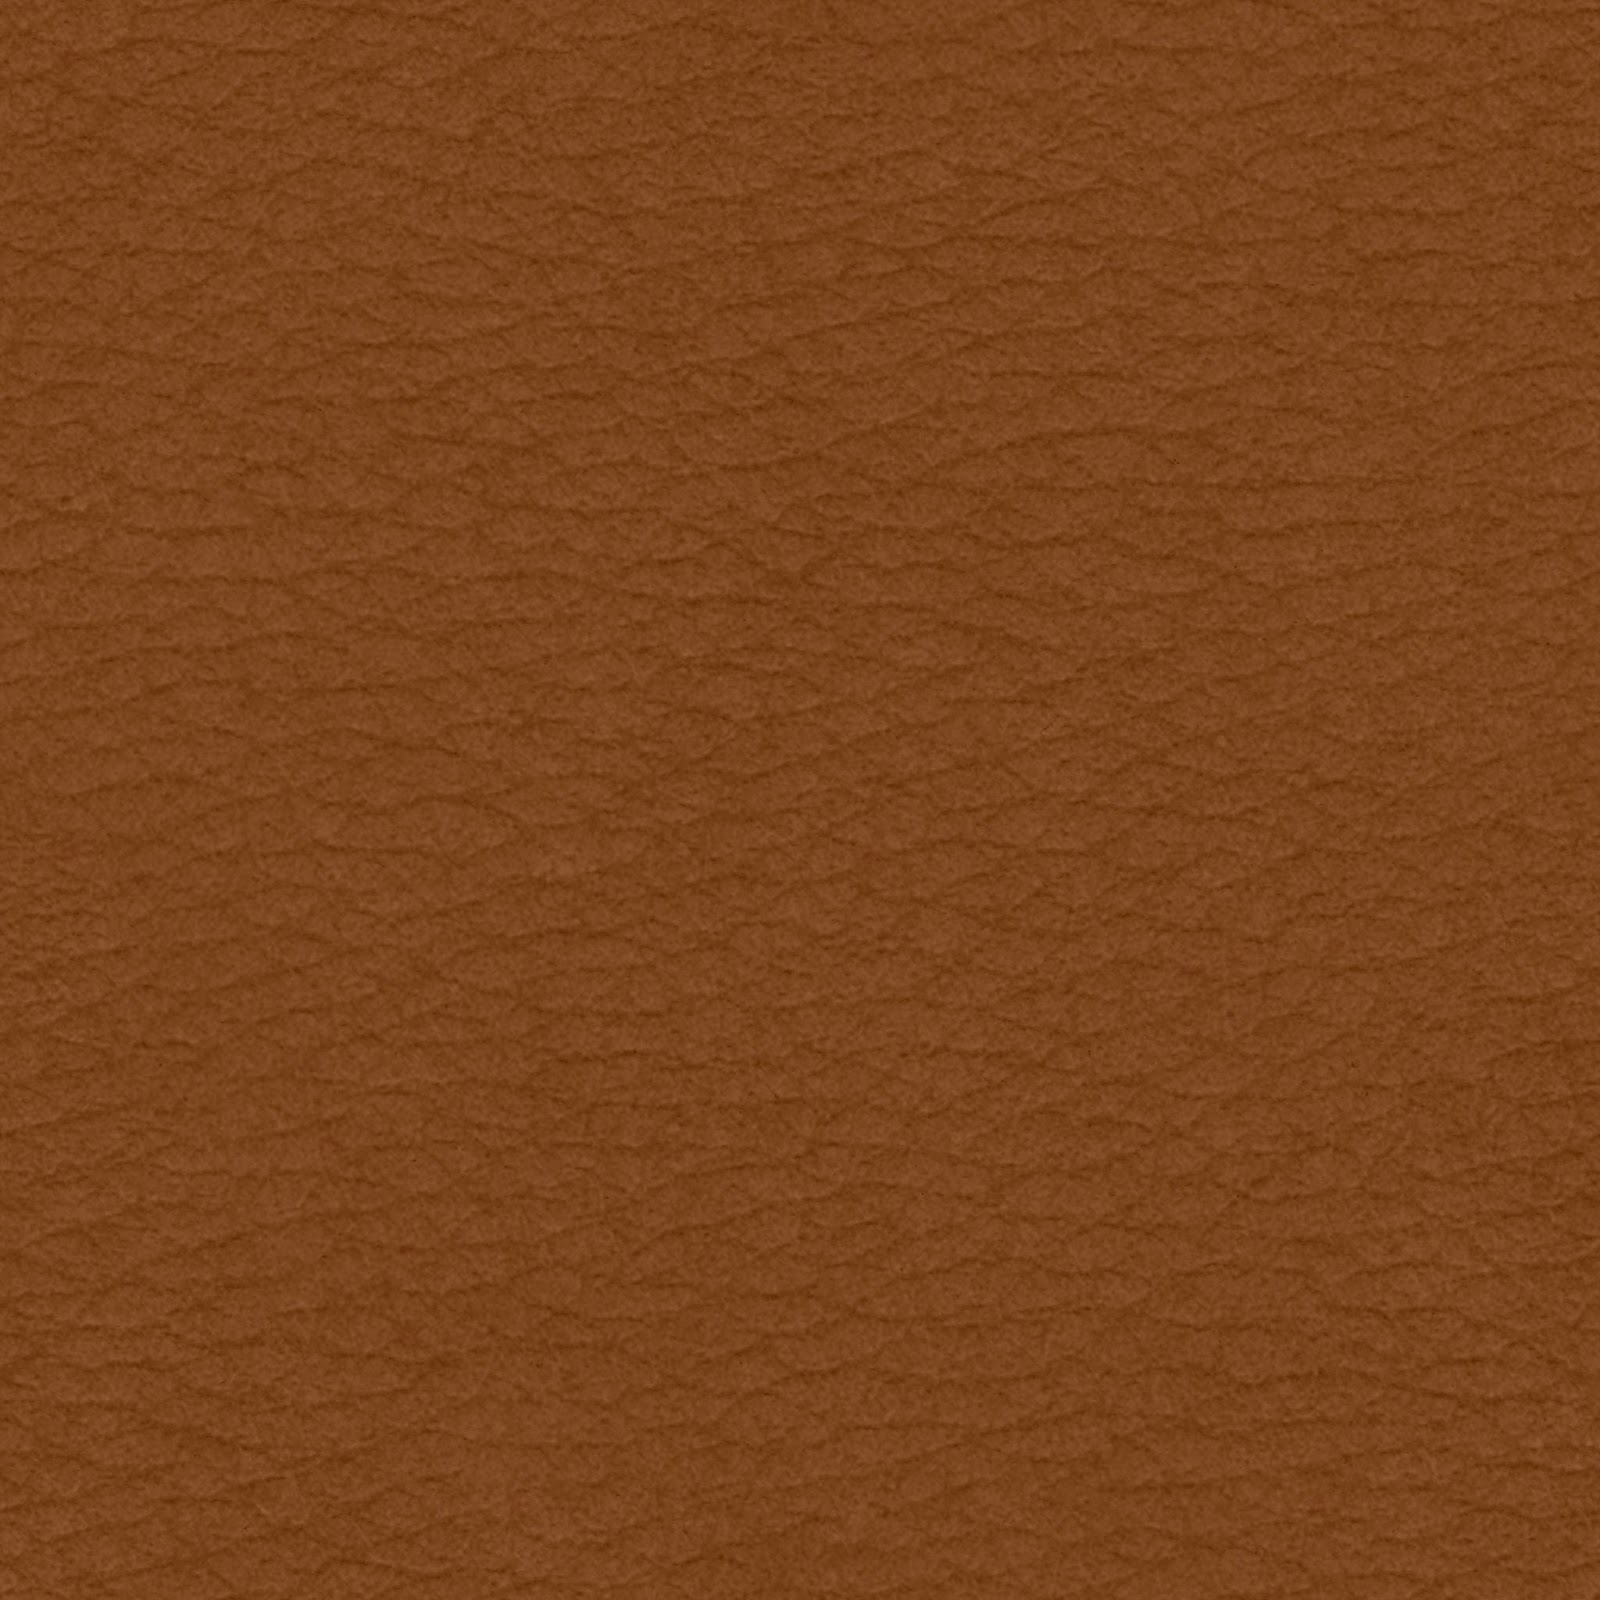 High Resolution Seamless Textures: Tileable Human Skin Texture #2: seamless-pixels.blogspot.com/2012/10/tileable-human-skin-texture-2...